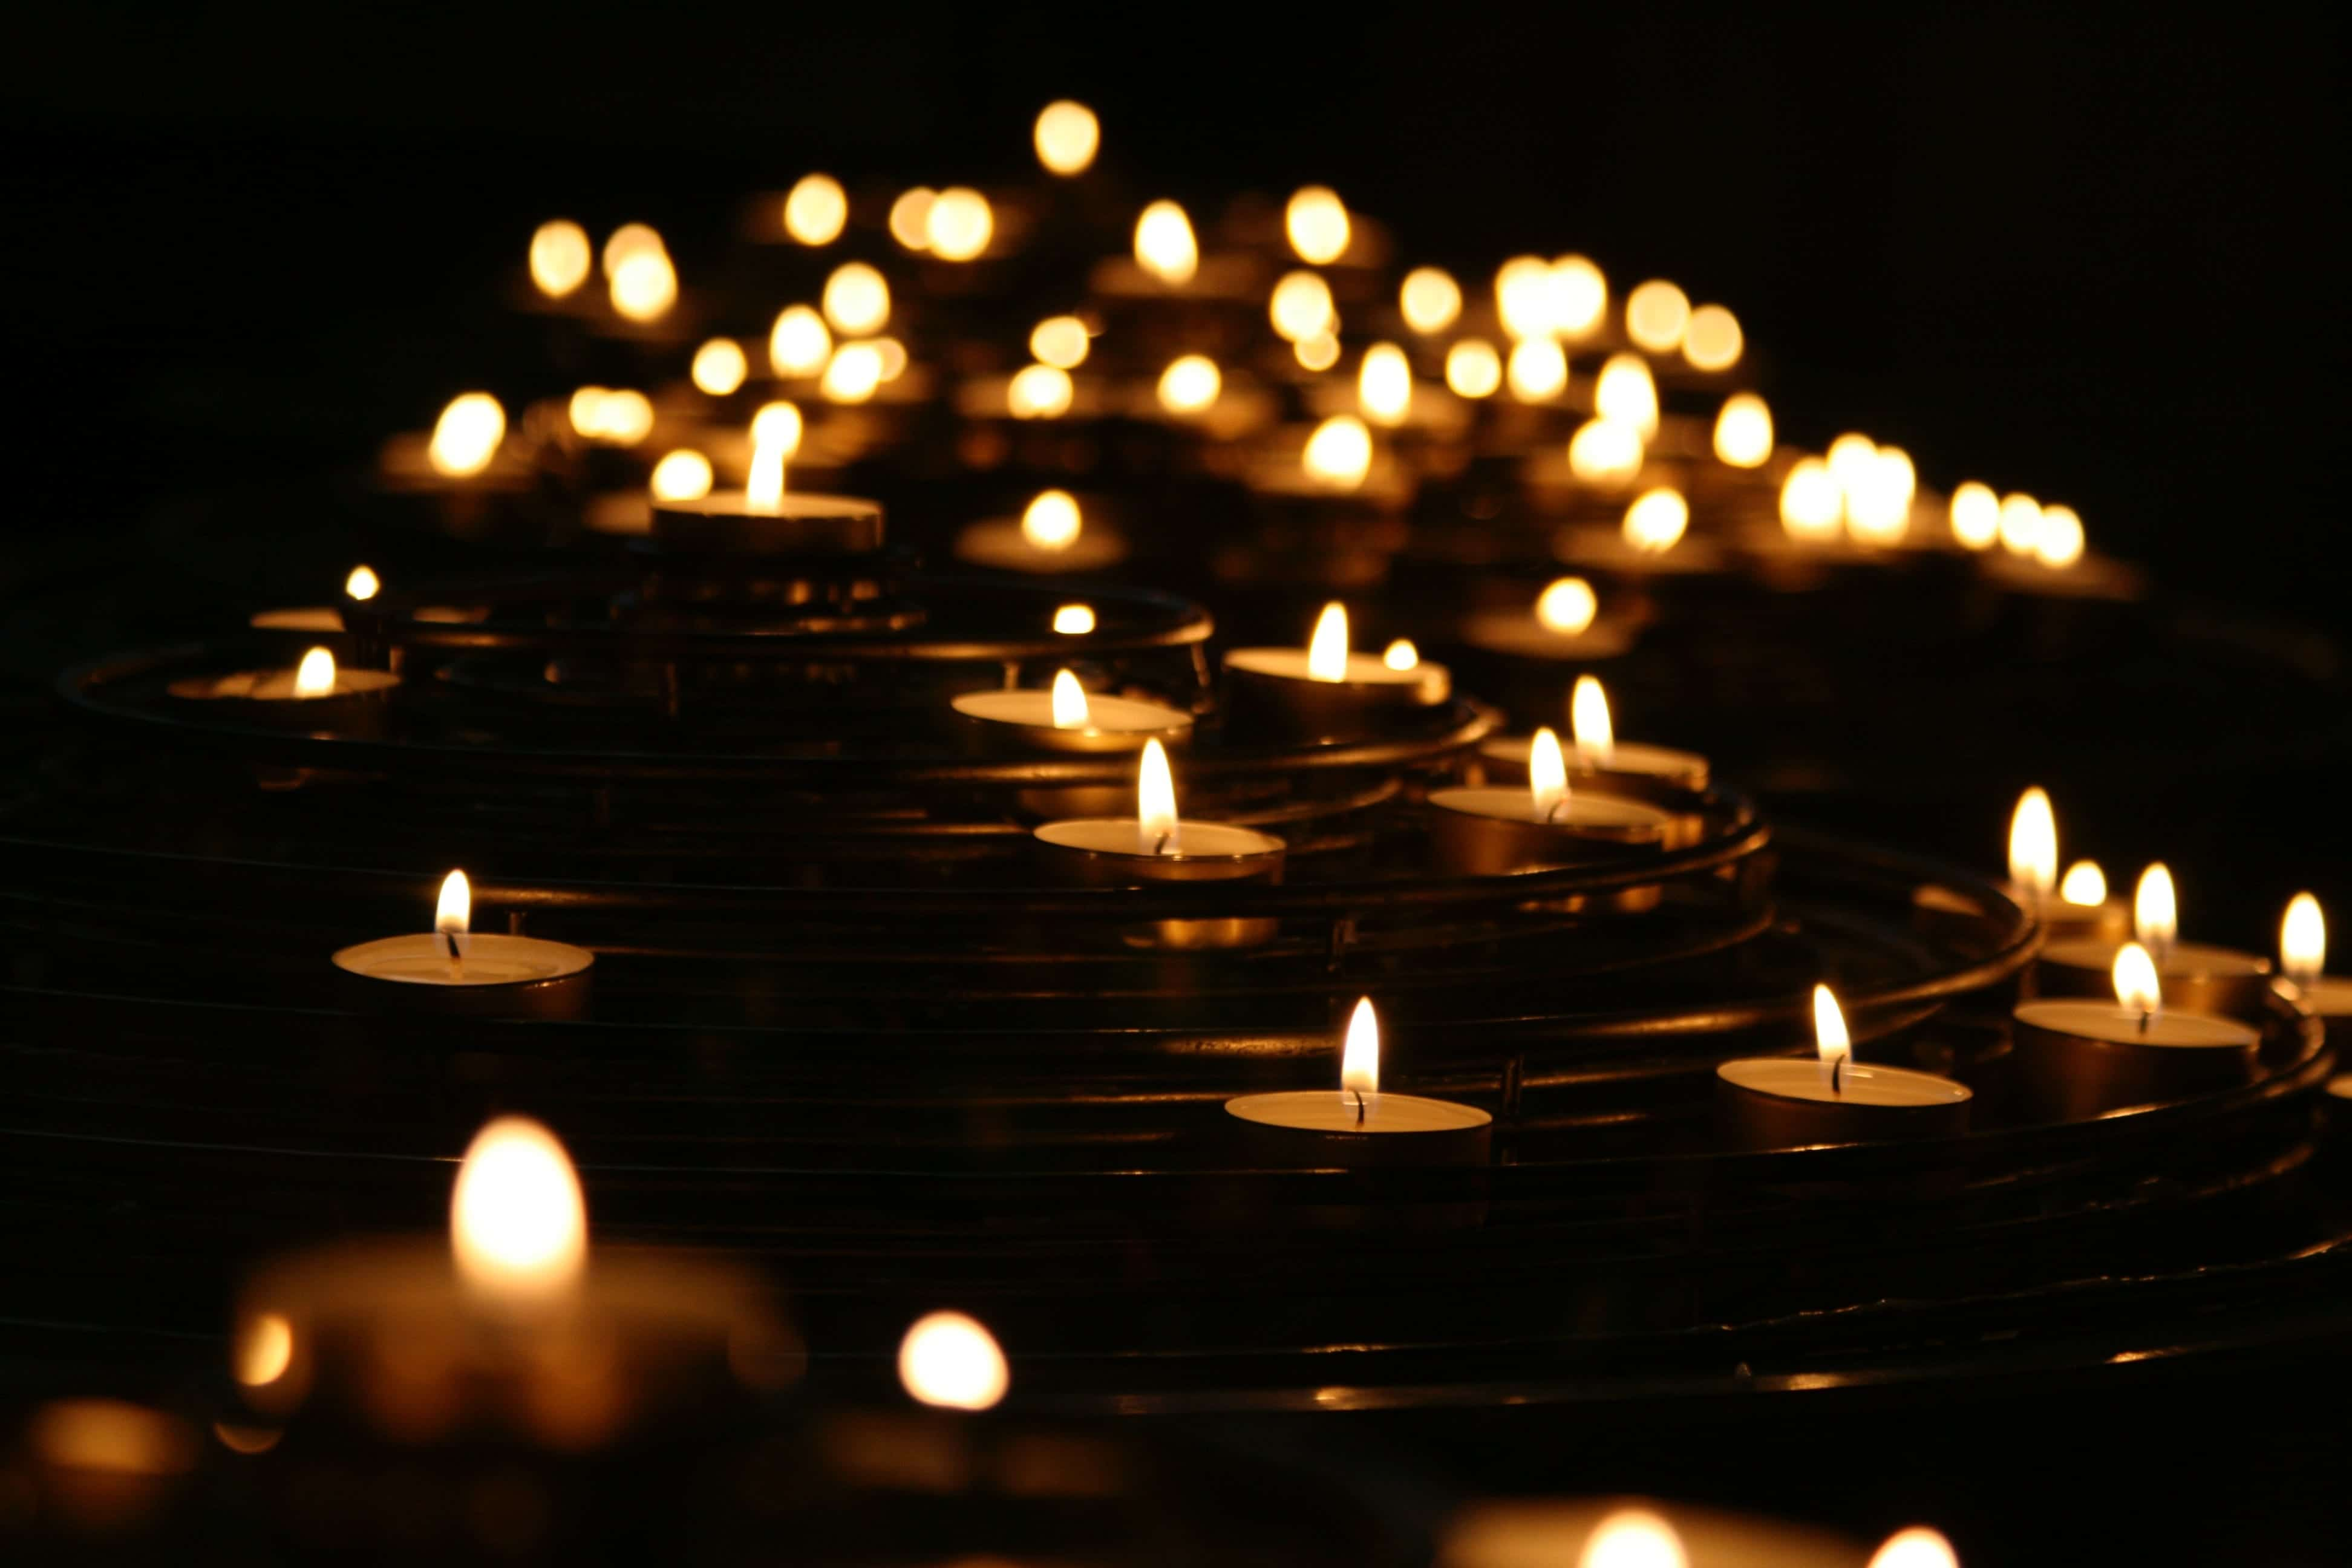 Low-angle photo of lighted candles; image by Mike Labrum, via Unsplash.com.